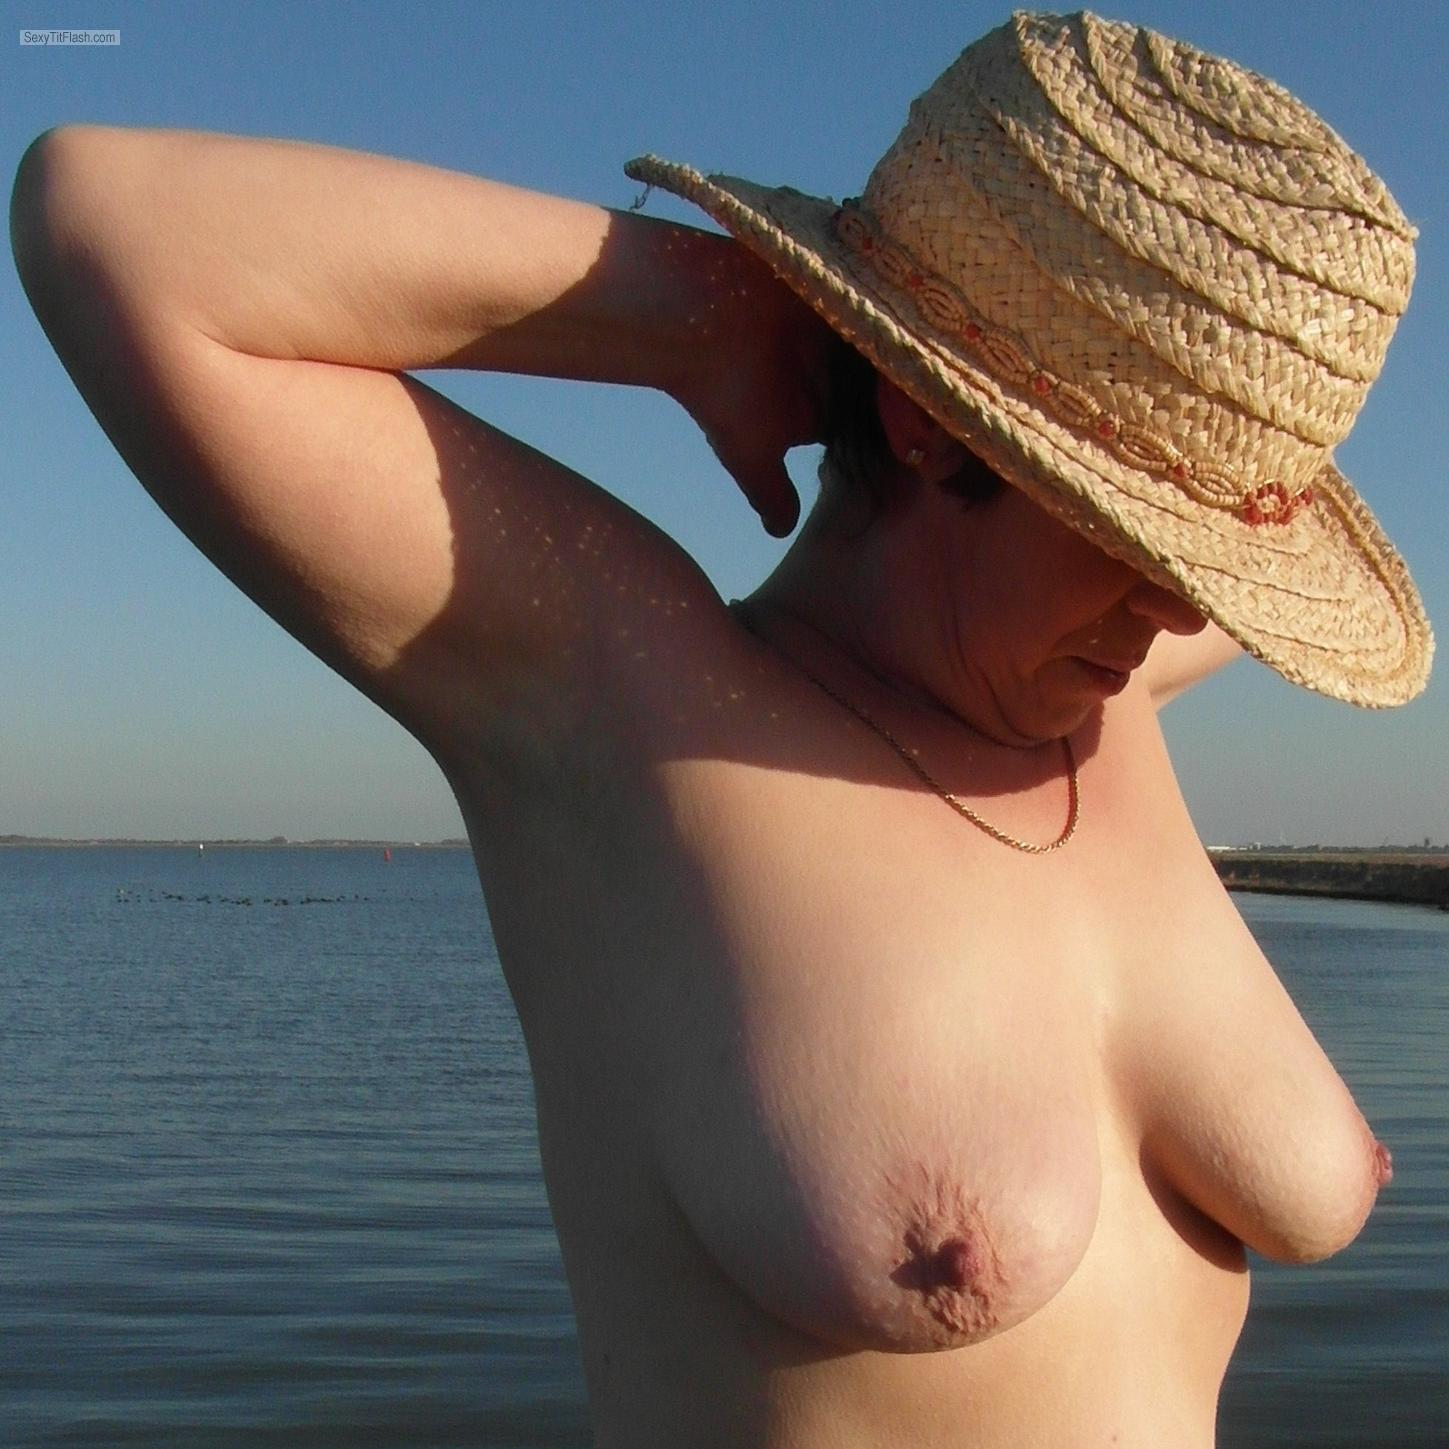 Tit Flash: My Medium Tits - Sexy Sue from United Kingdom